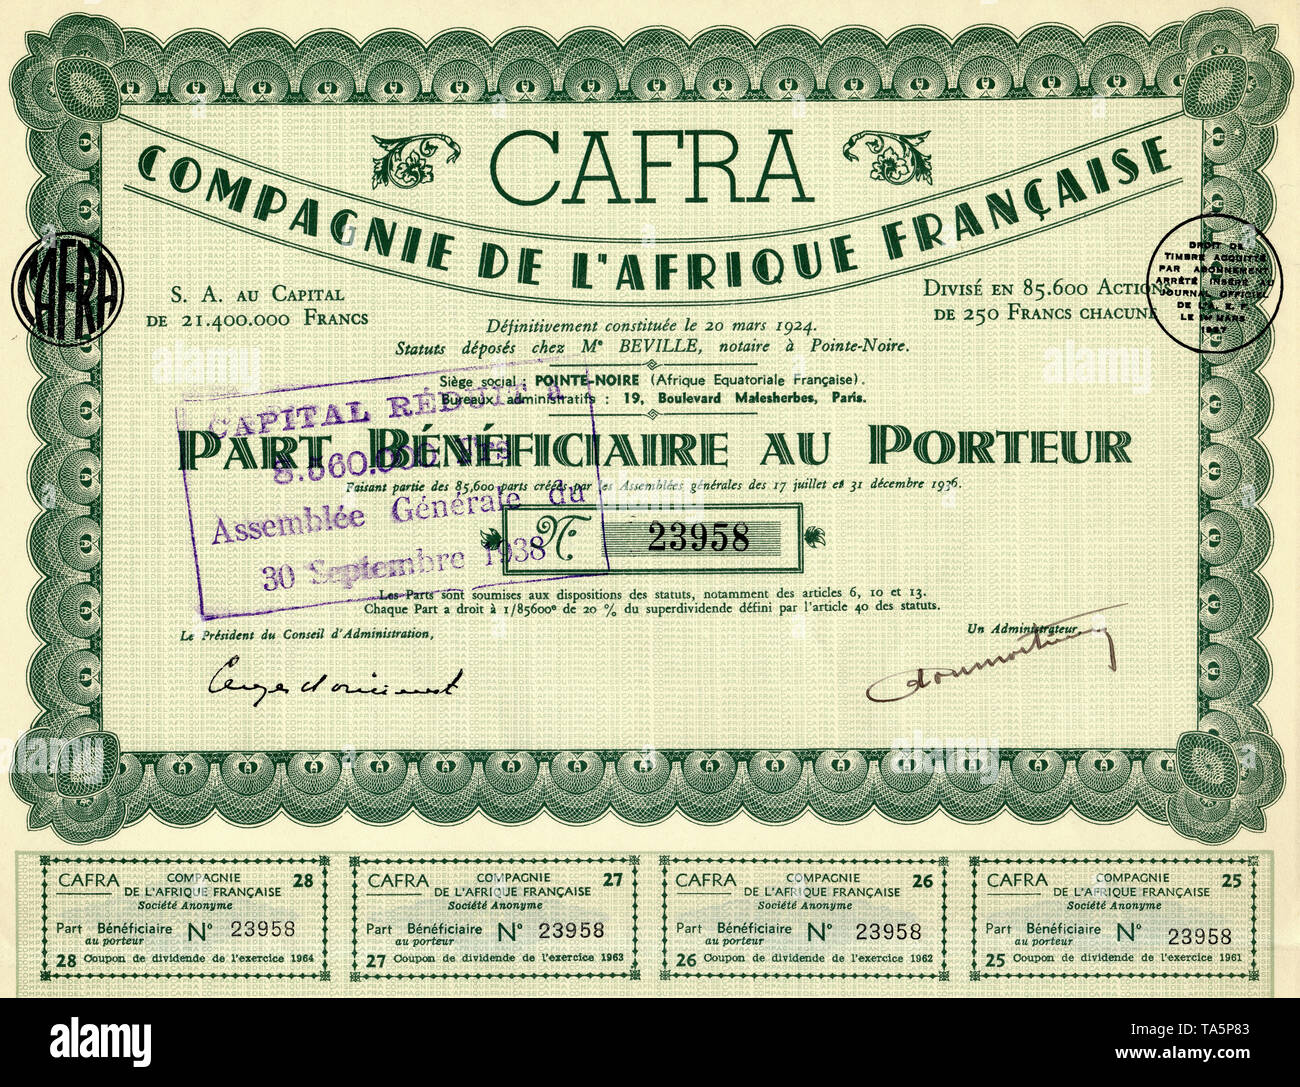 Historic colonial share certificate, 1936, Paris, 250 French francs, France, Europe, Compagnie Francaise de l'Afrique, CAFRA, Pointe-Noire, French Congo, also known as French Equatorial Africa, now Republic of Congo, Africa, Historisches Wertpapier, Kolonial-Aktie, ausgestellt 1936 in Paris über 250 französische Franc, Frankreich, Europa, Compagnie de l'Afrique Francaise, CAFRA, Pointe-Noire, Französisch-Kongo oder Französisch-Äquatorialafrika, heute Republik Kongo, Afrika - Stock Image